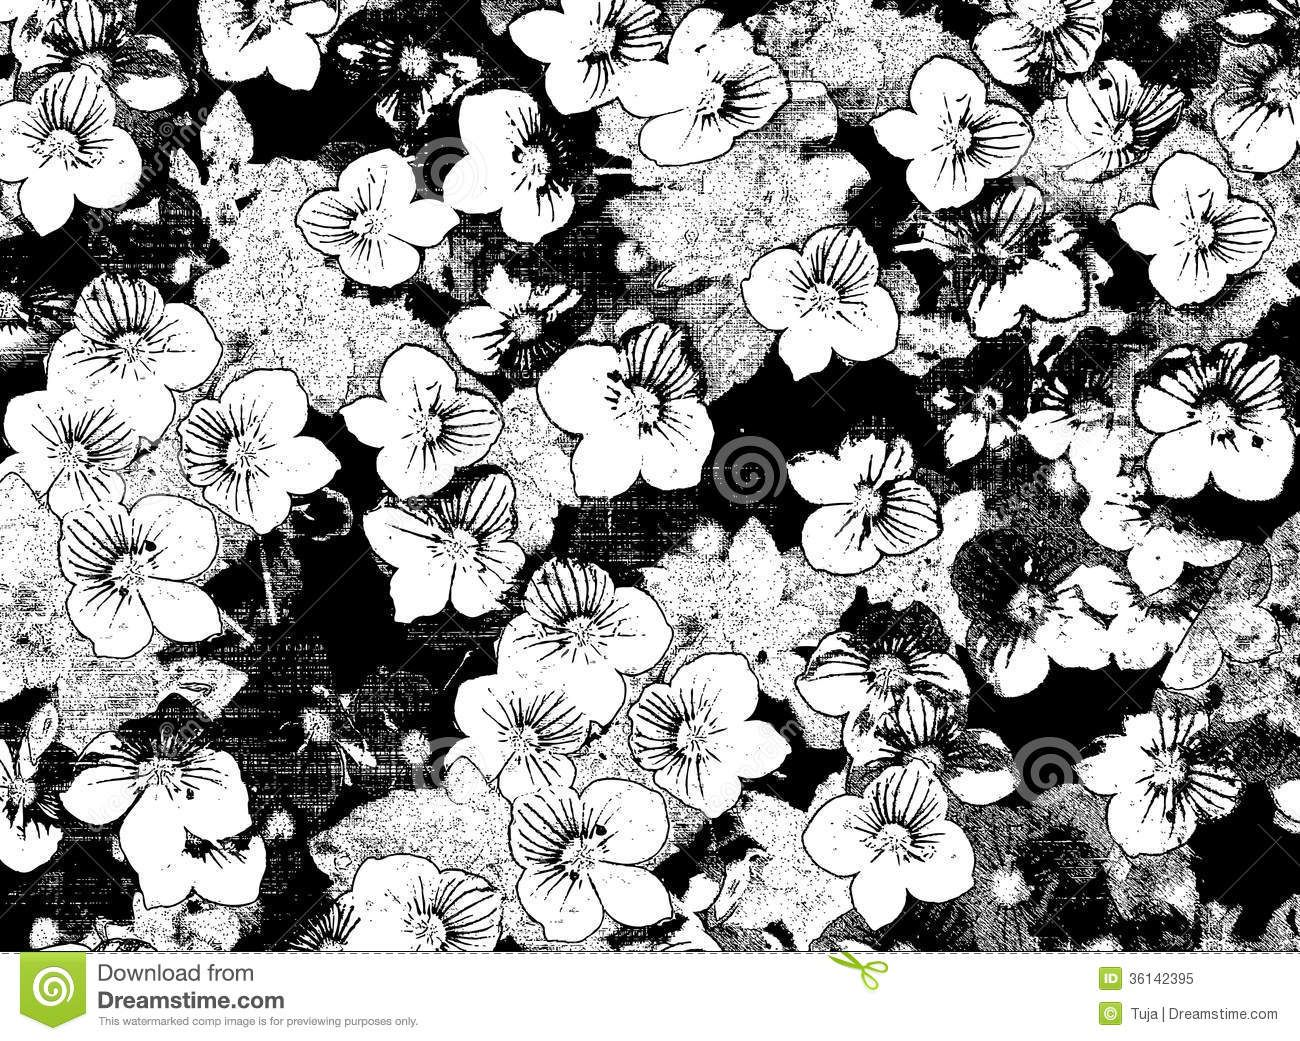 Black and white flower backgrounds 6 high resolution wallpaperg black and white flower backgrounds 6 high resolution mightylinksfo